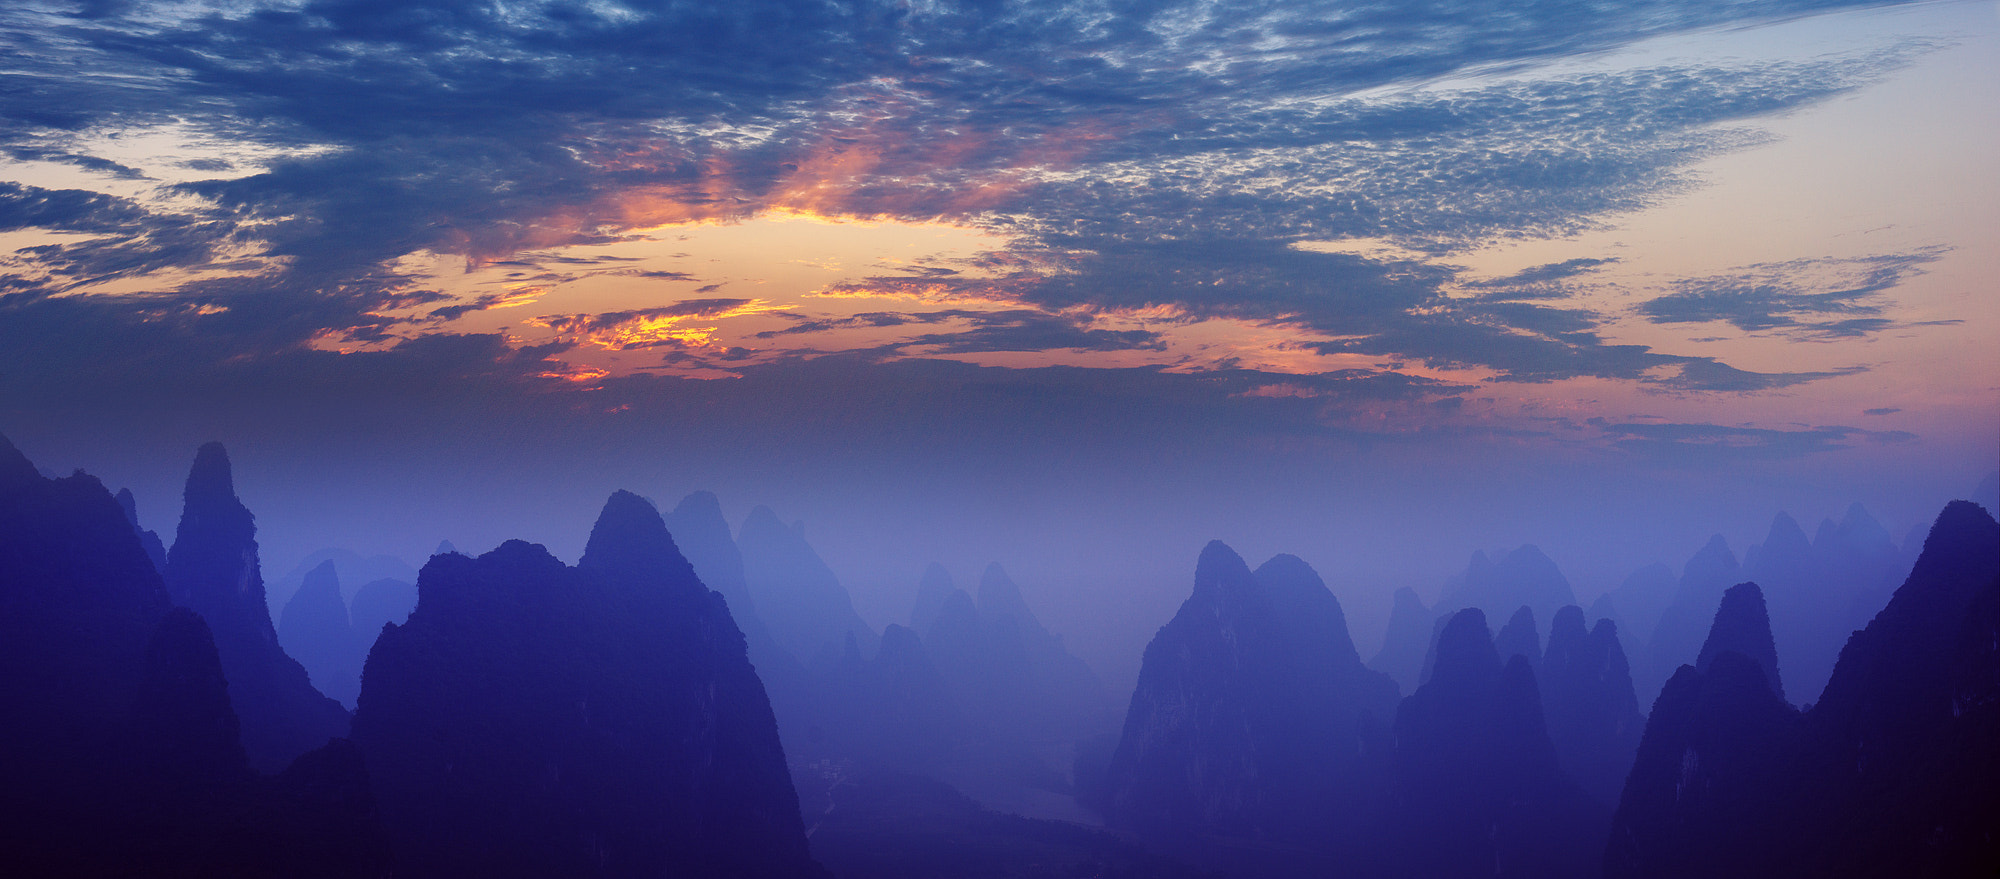 Photograph Sunrise over Li river by Sergey Kuznetsov on 500px